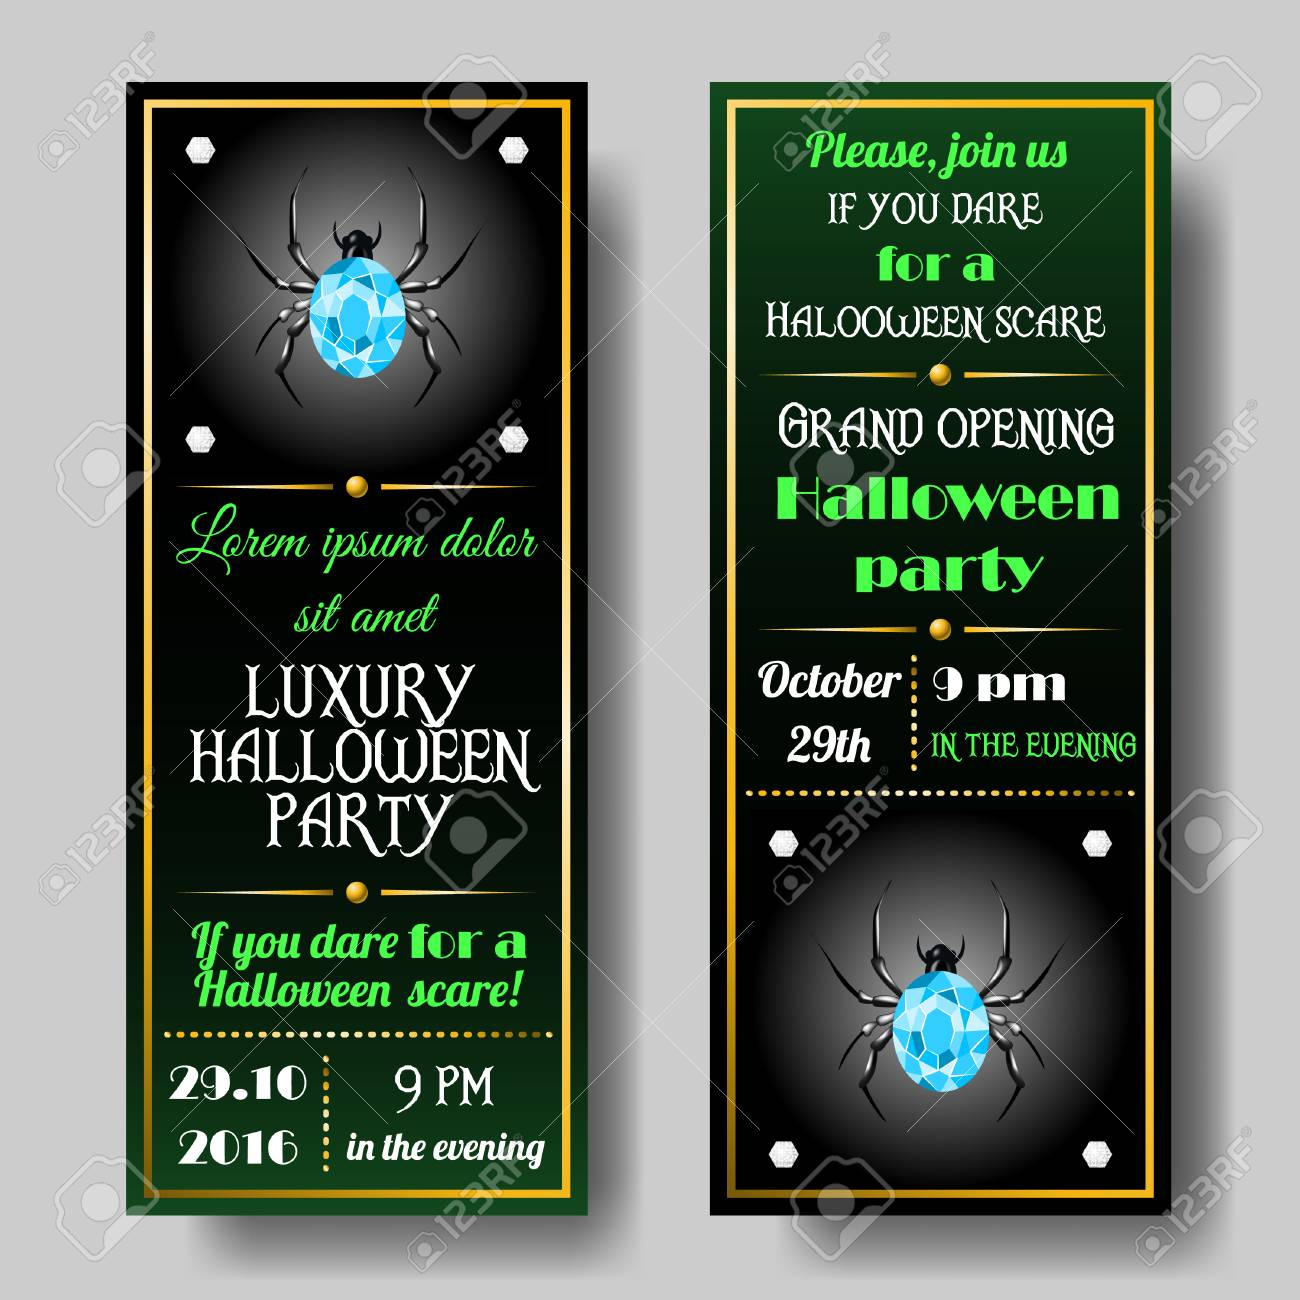 Halloween Party Invitations Set Invitation Card With Gold Elements